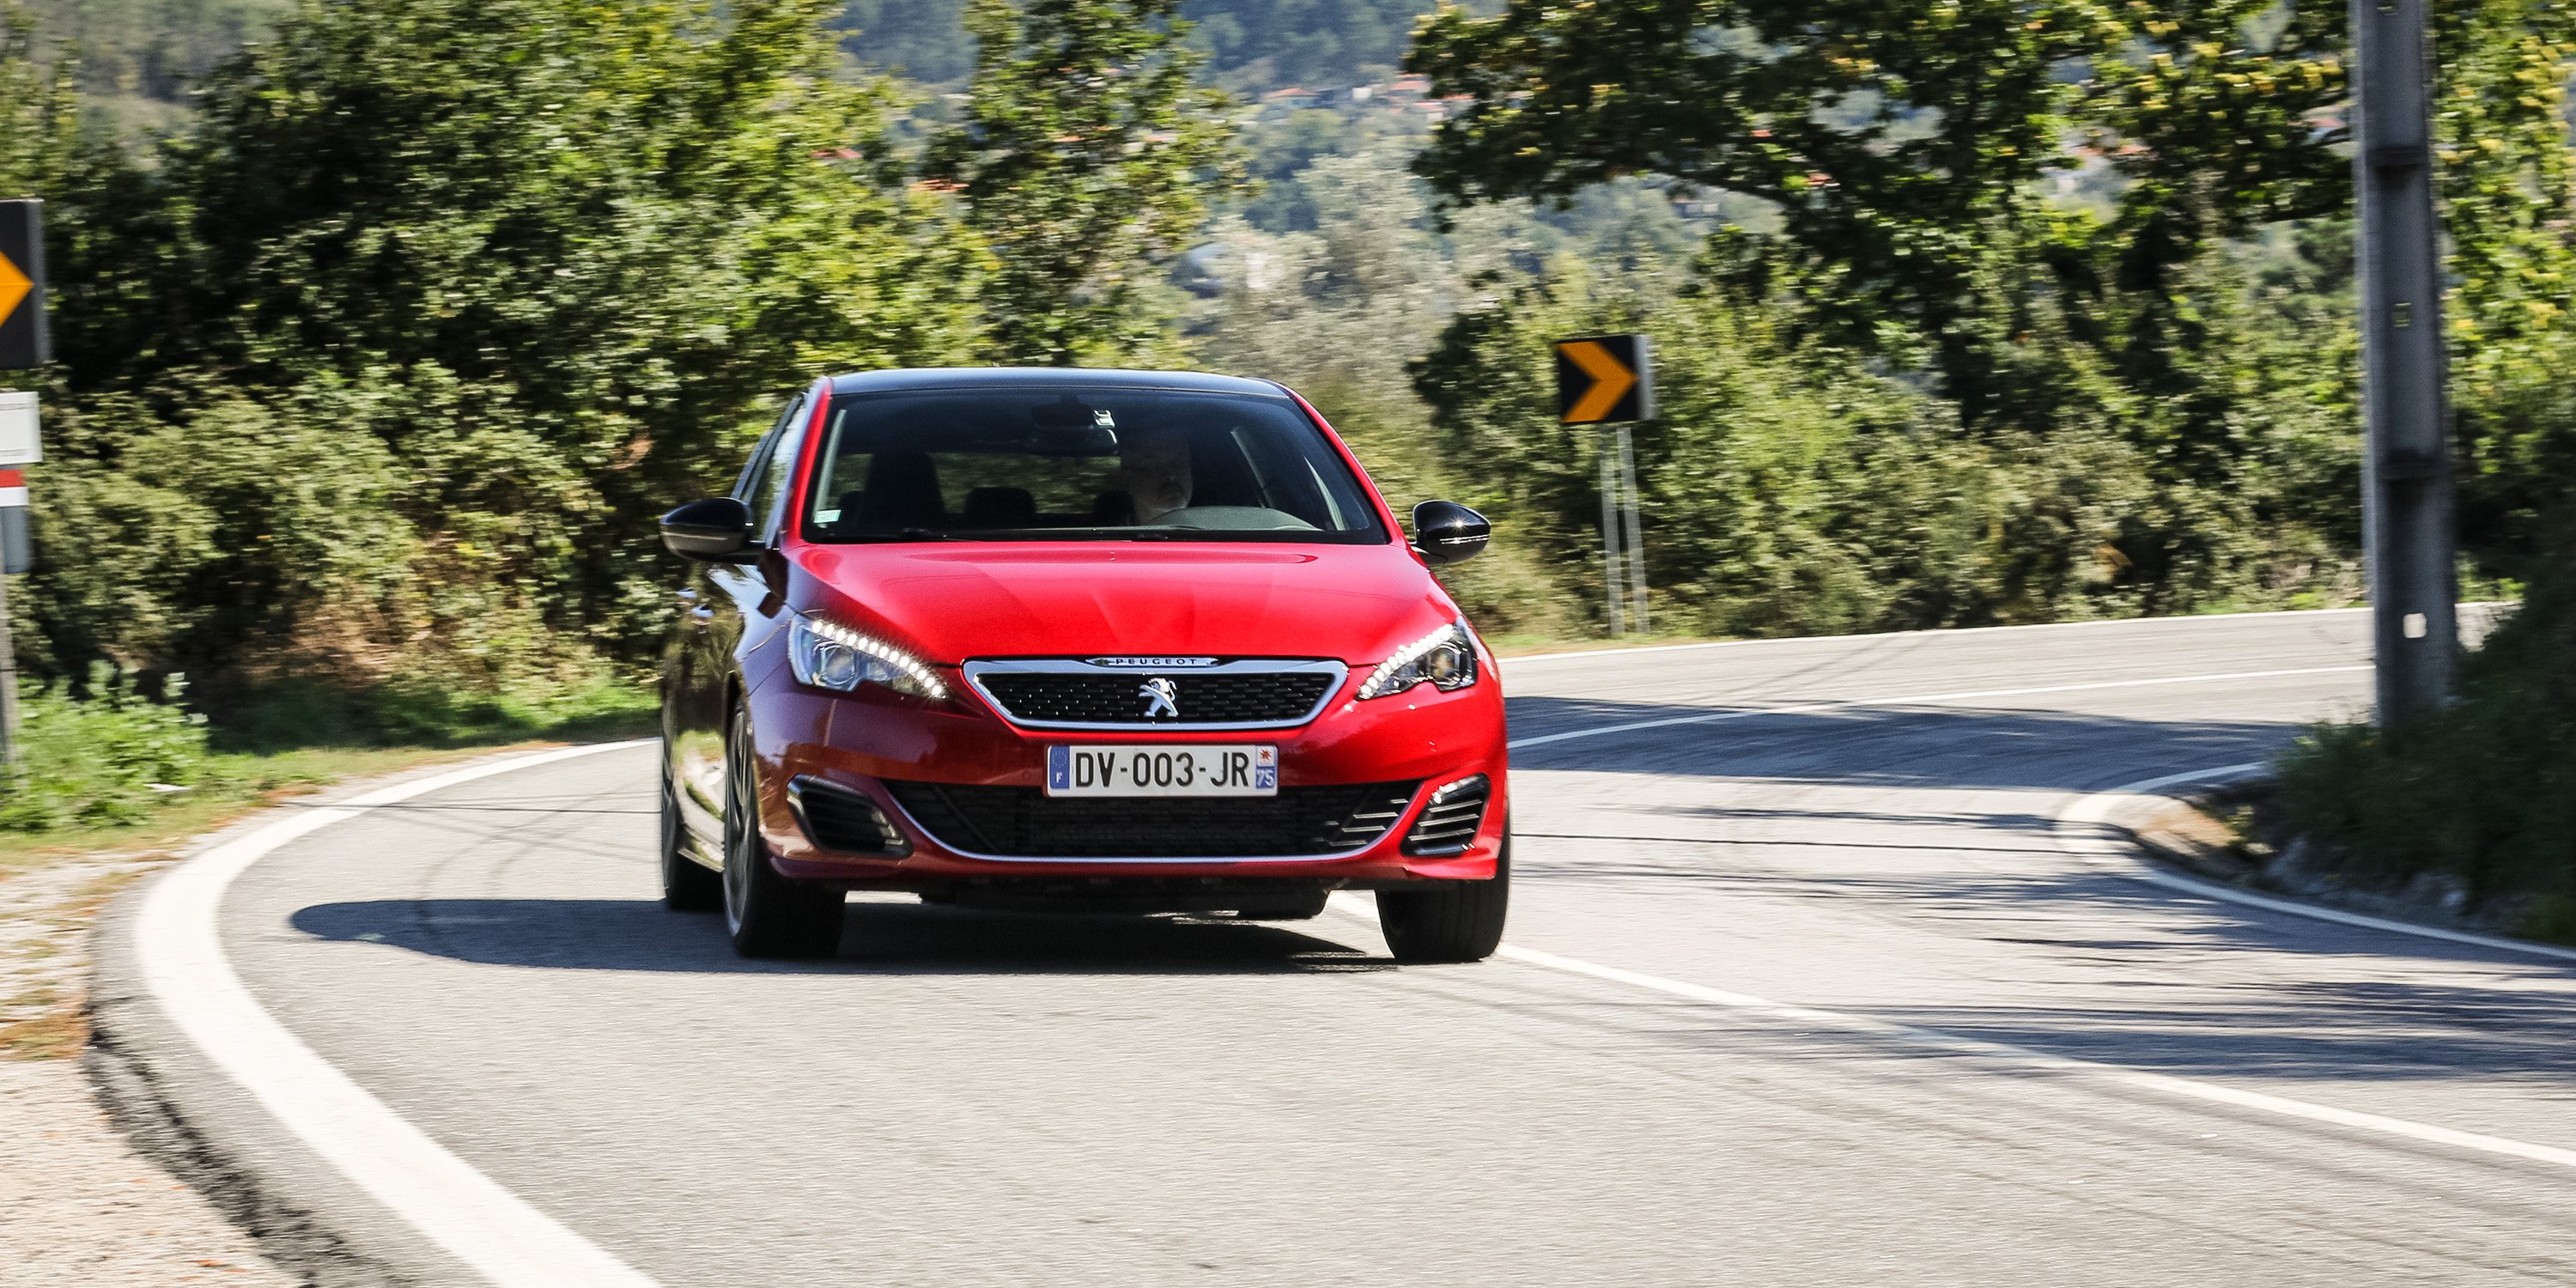 2016 Peugeot 308 Gti Front View (Photo 6 of 15)